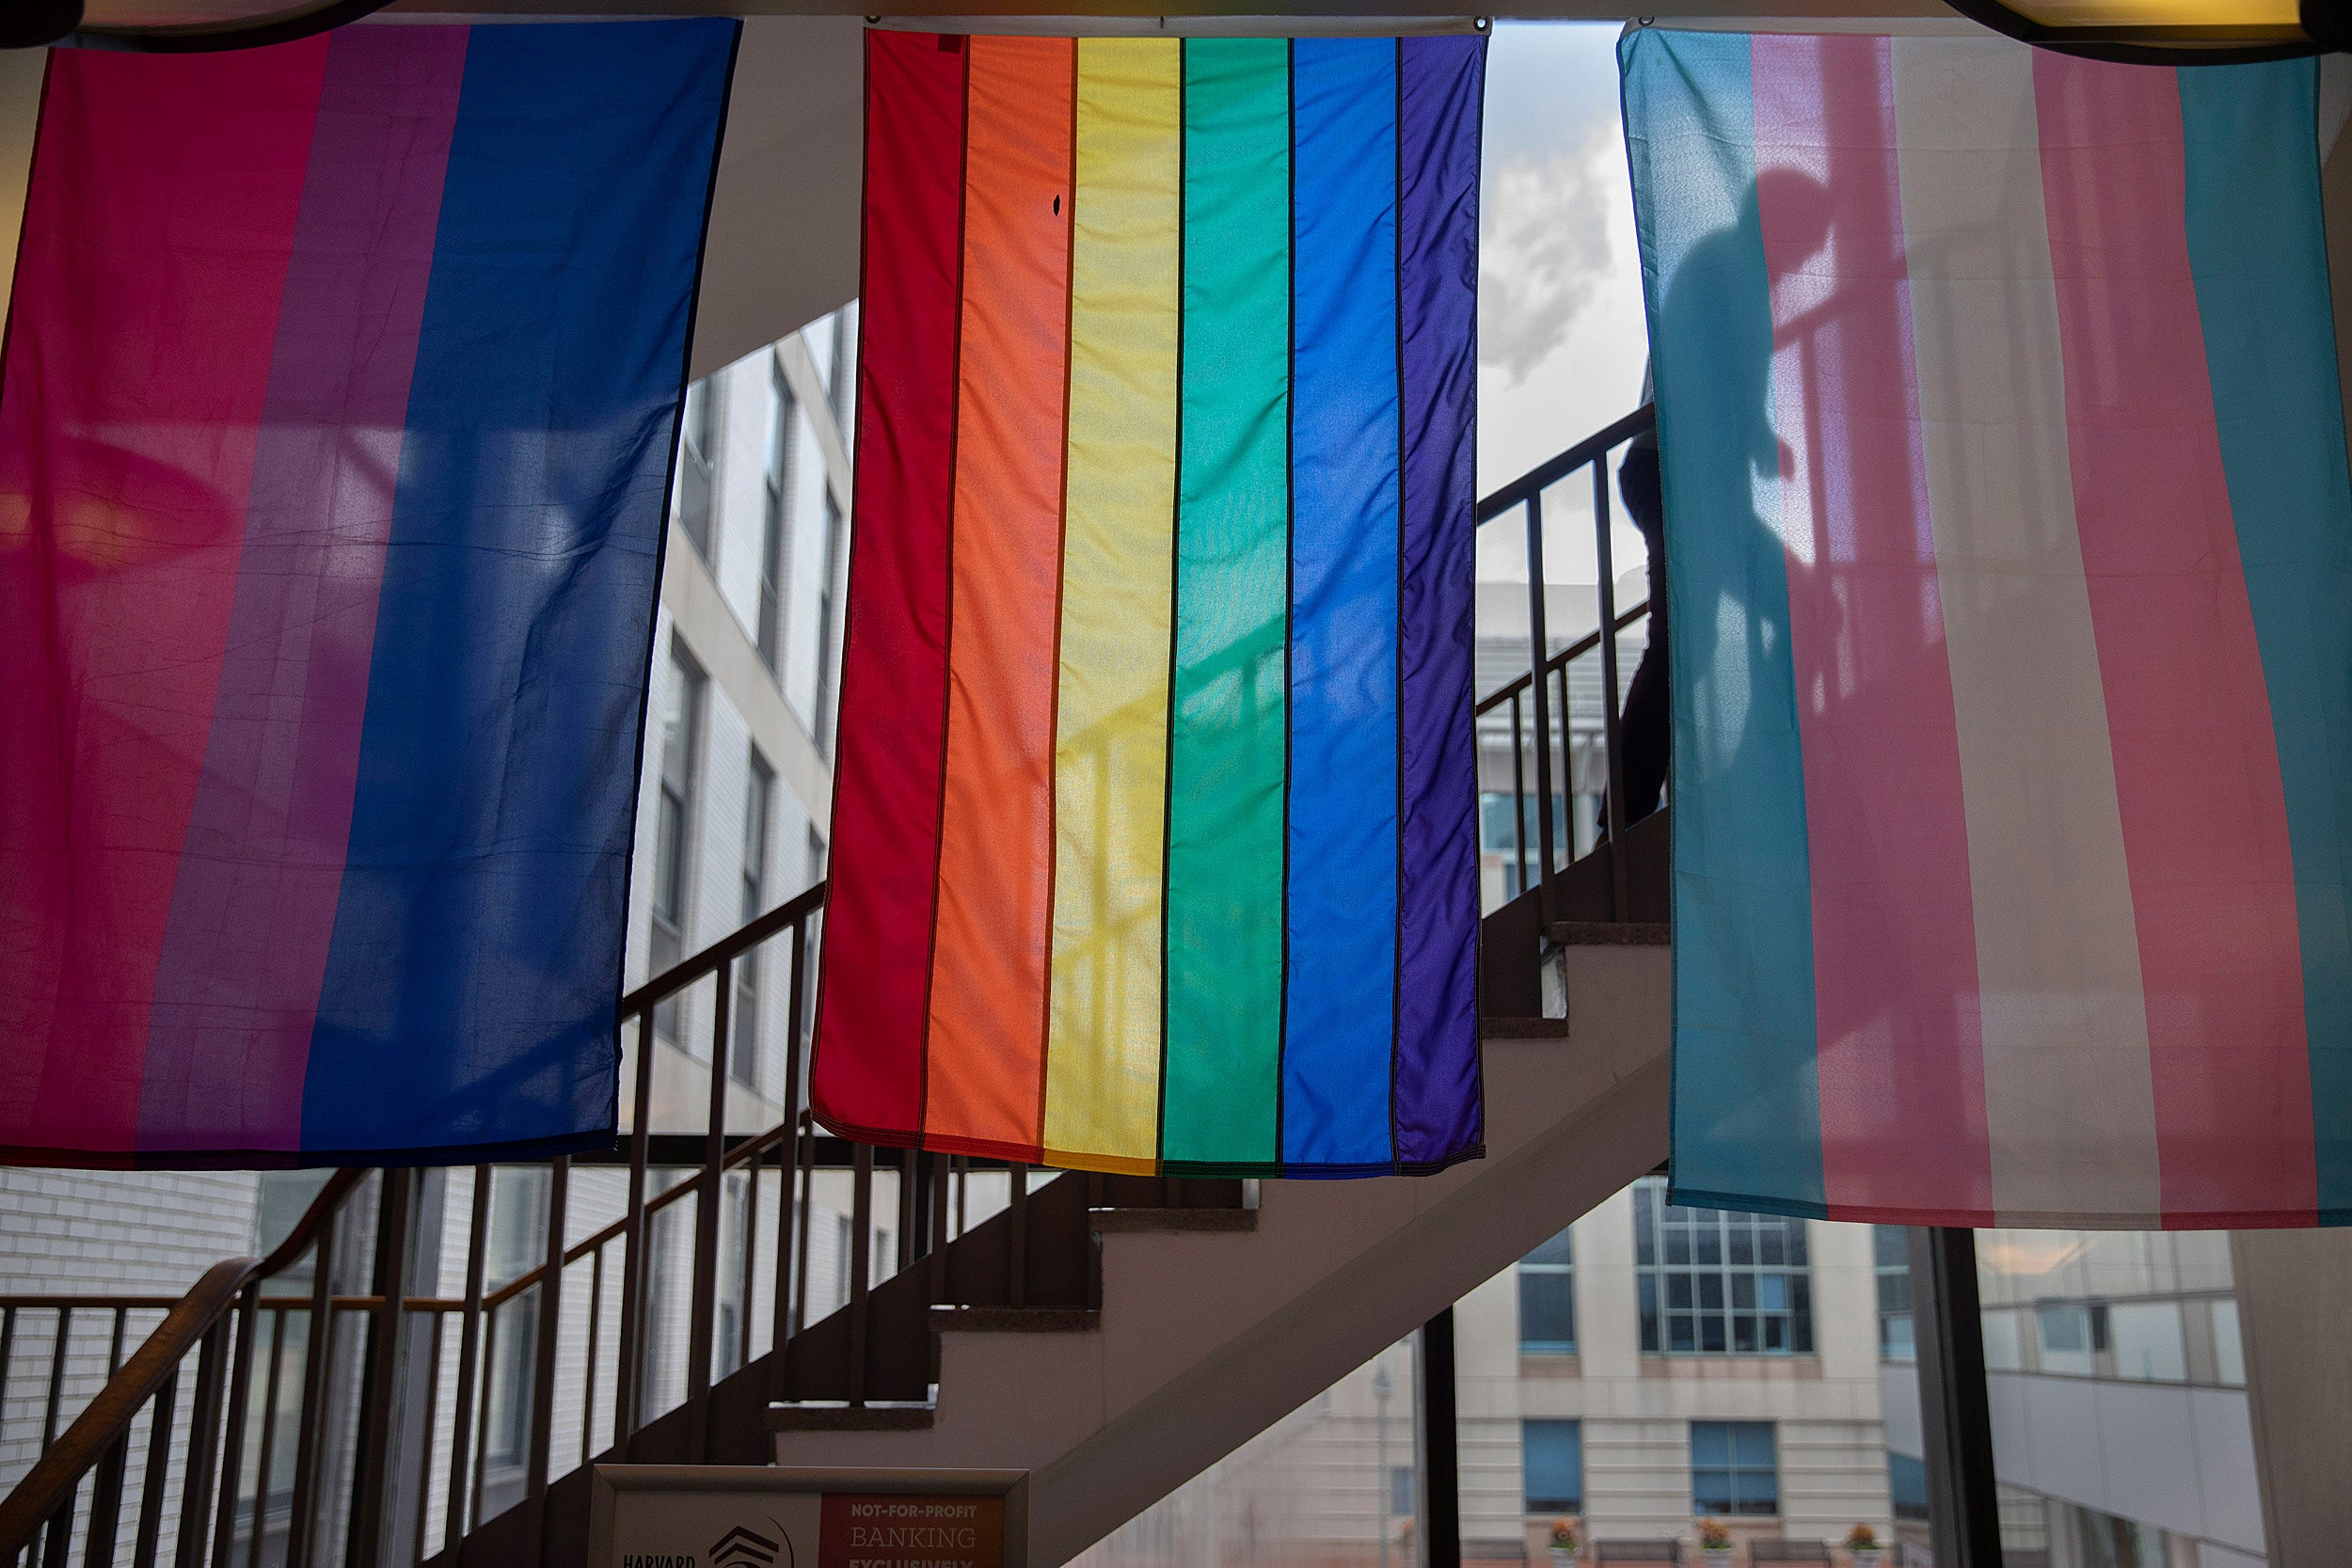 Student walking up stairway with colorful flags hanging from ceiling.